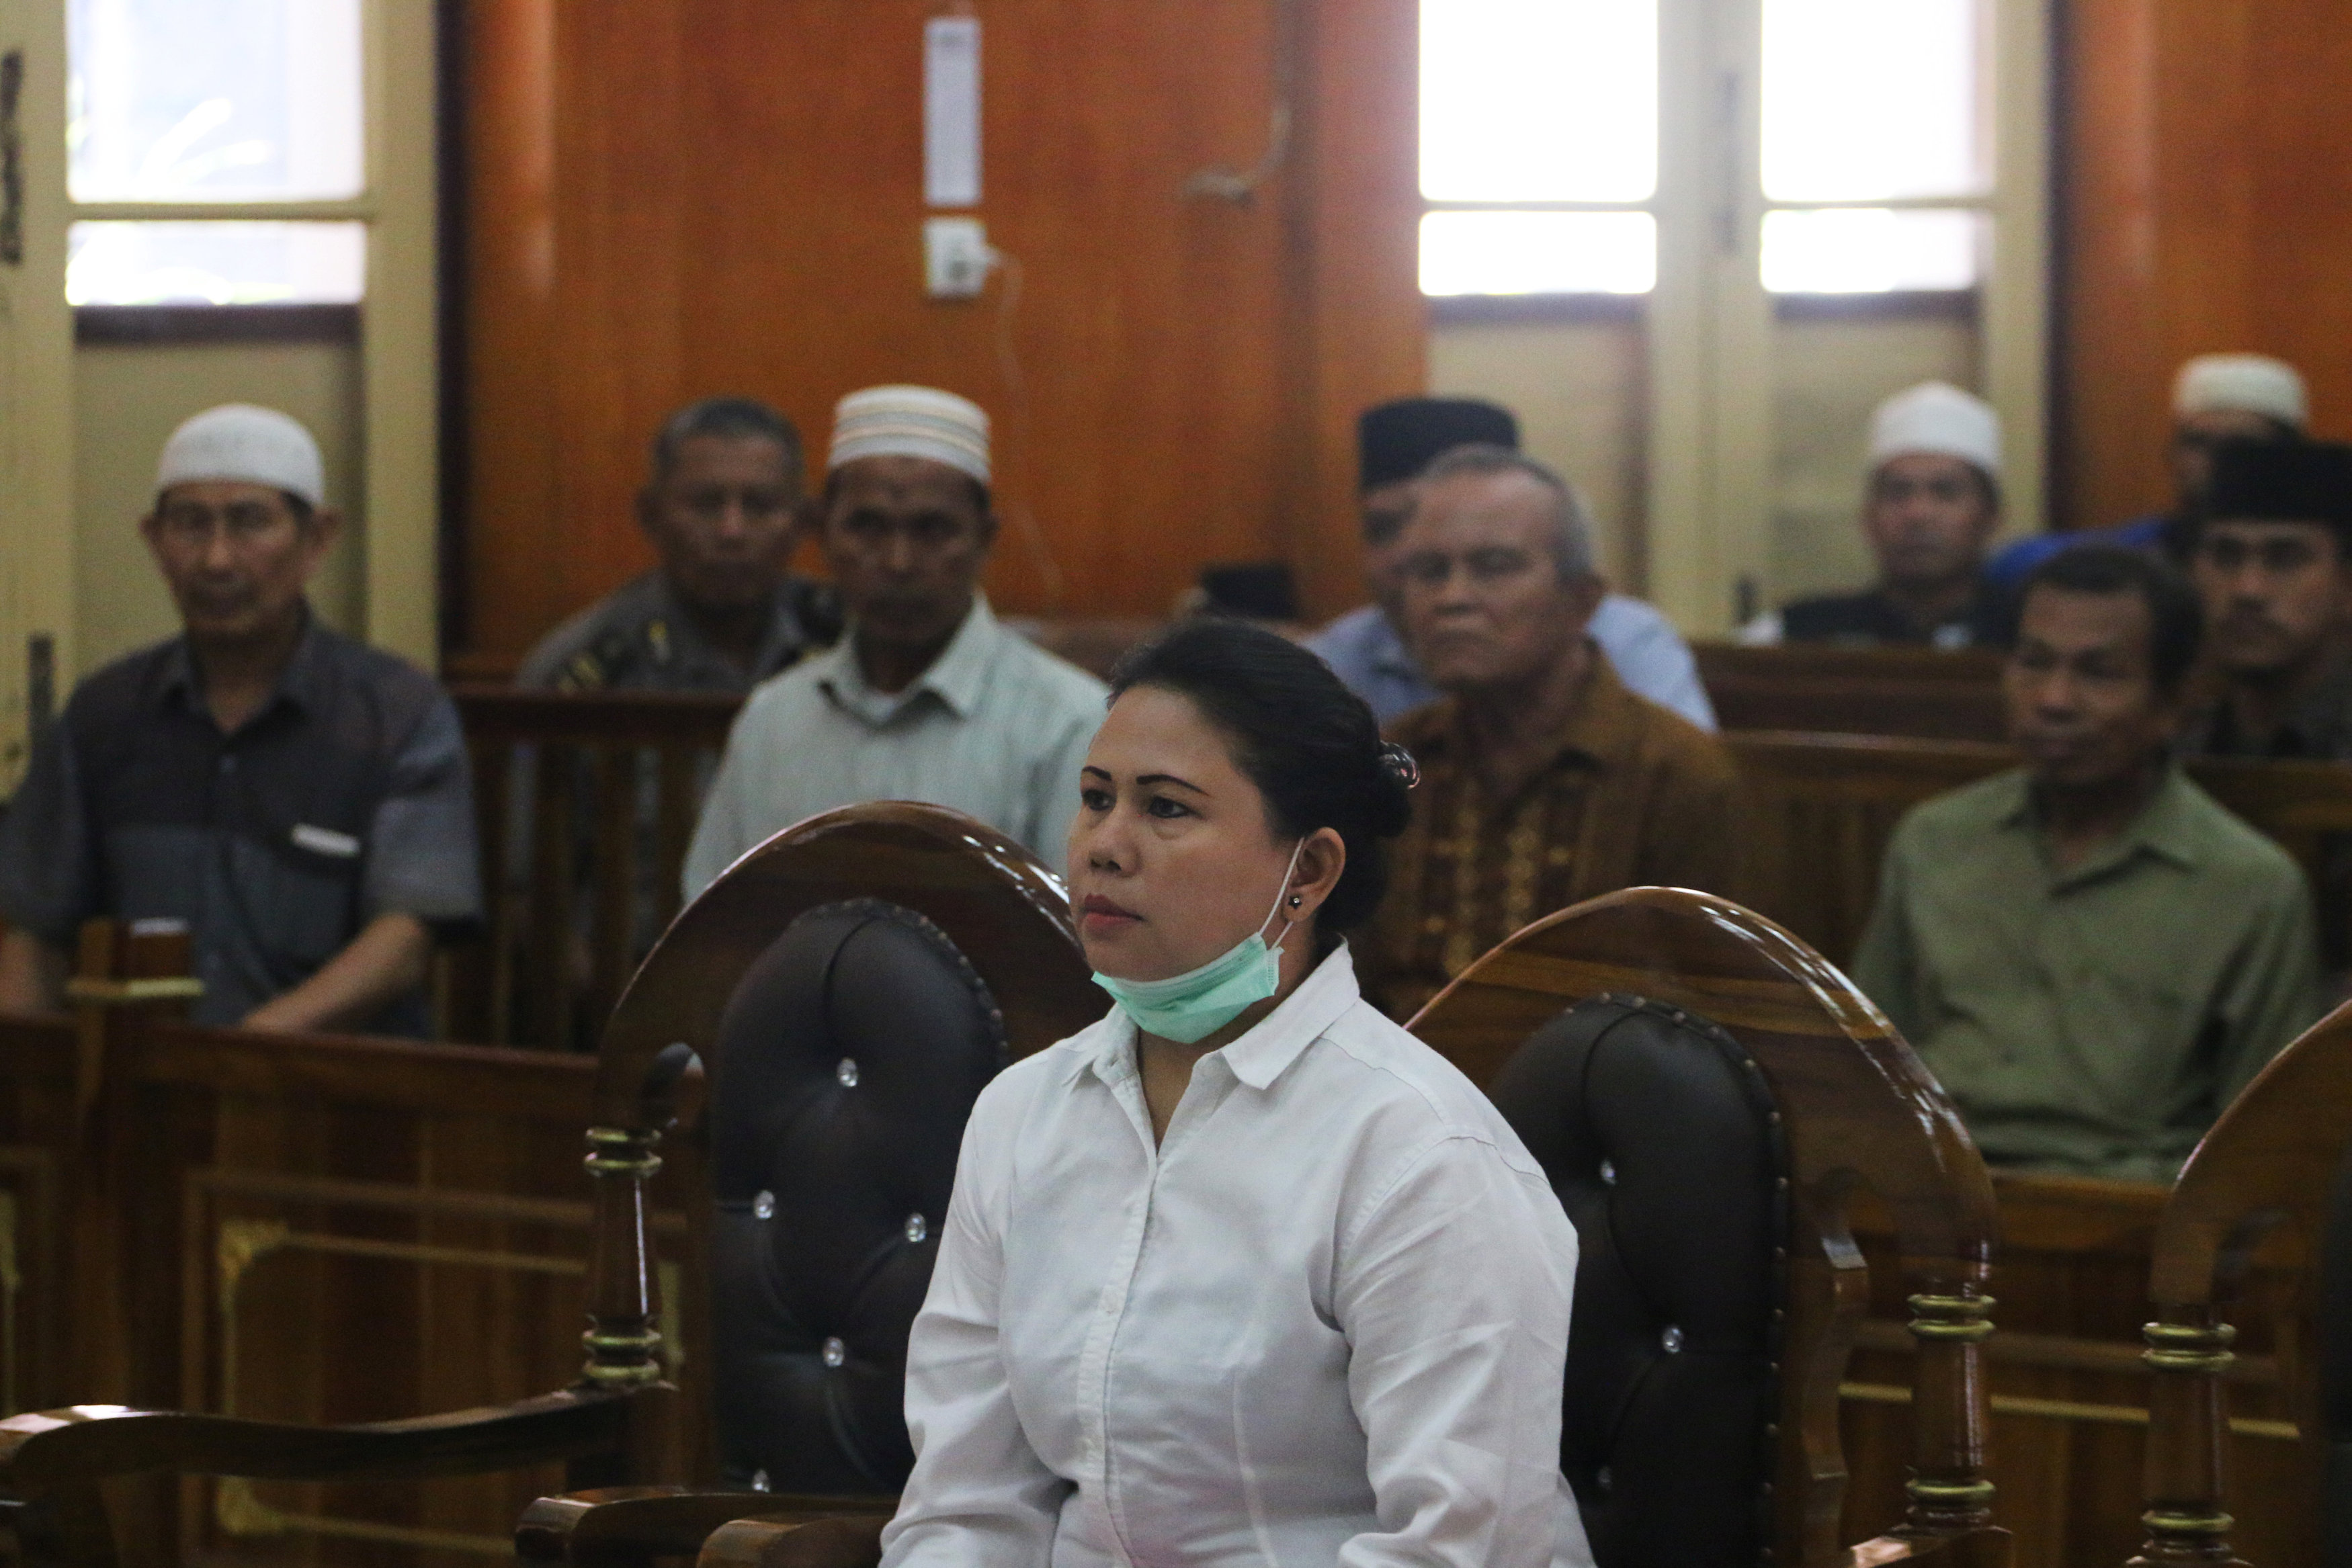 Meiliana, a 44-year-old ethnic Chinese Buddhist, sits in a courtroom for blasphemy charges, in Medan, Sumatra, Indonesia August 21, 2018, in this photo taken by Antara Foto. Picture taken August 21, 2018. Antara Foto/Irsan Mulyadi/via REUTERS